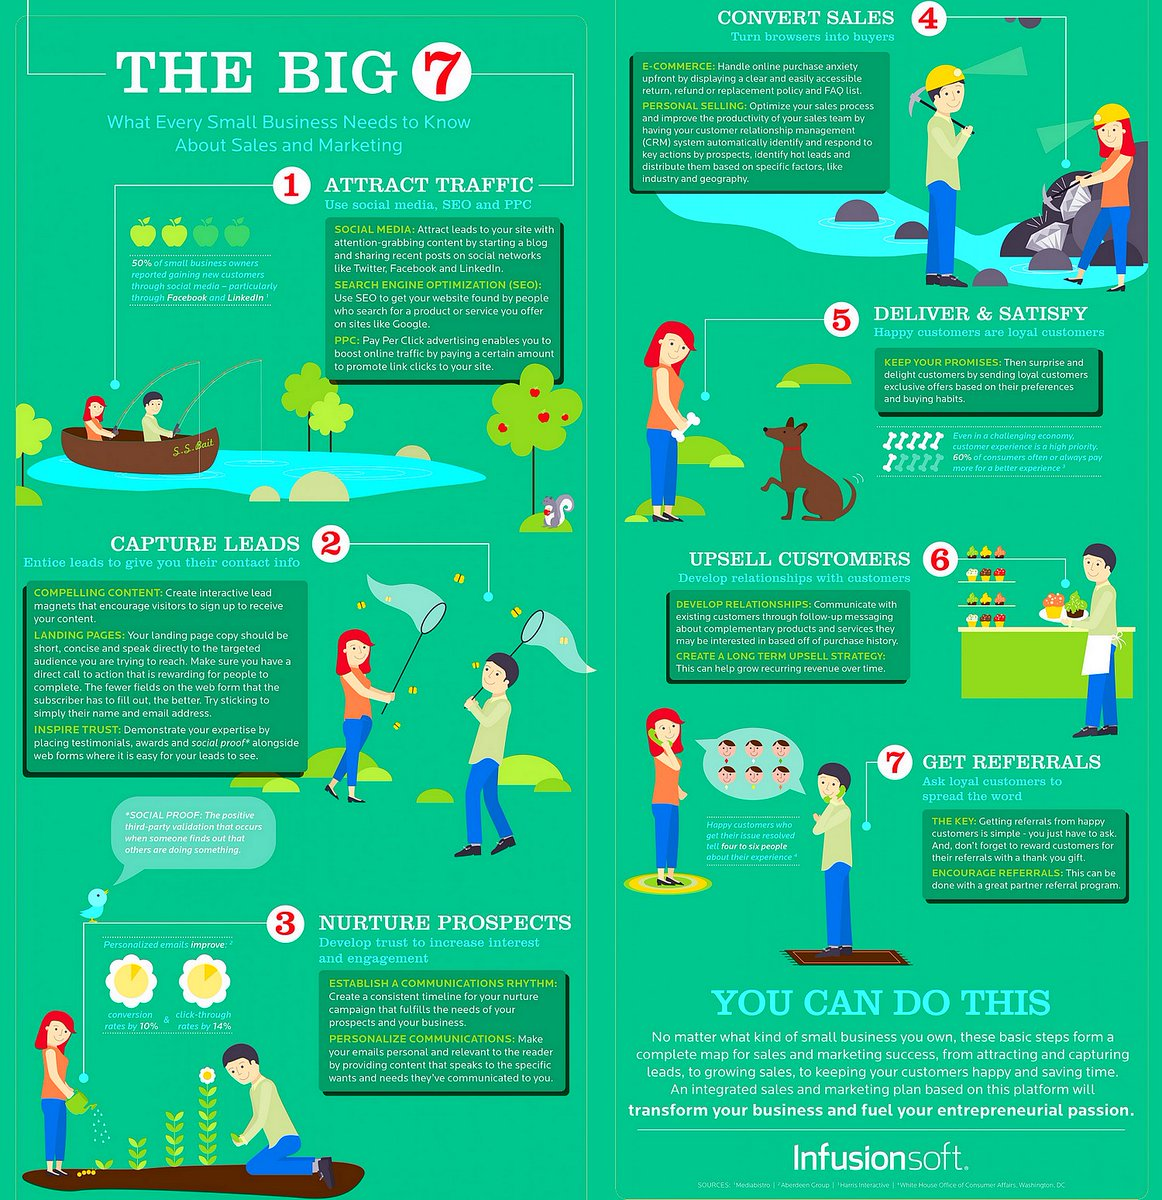 The &quot;Big 7&quot; Steps: What Every #Startup Needs to Know About #Sales &amp; #Marketing [Infographic]  #DigitalMarketing #LeadGeneration #CX<br>http://pic.twitter.com/d0KCZyr6ka